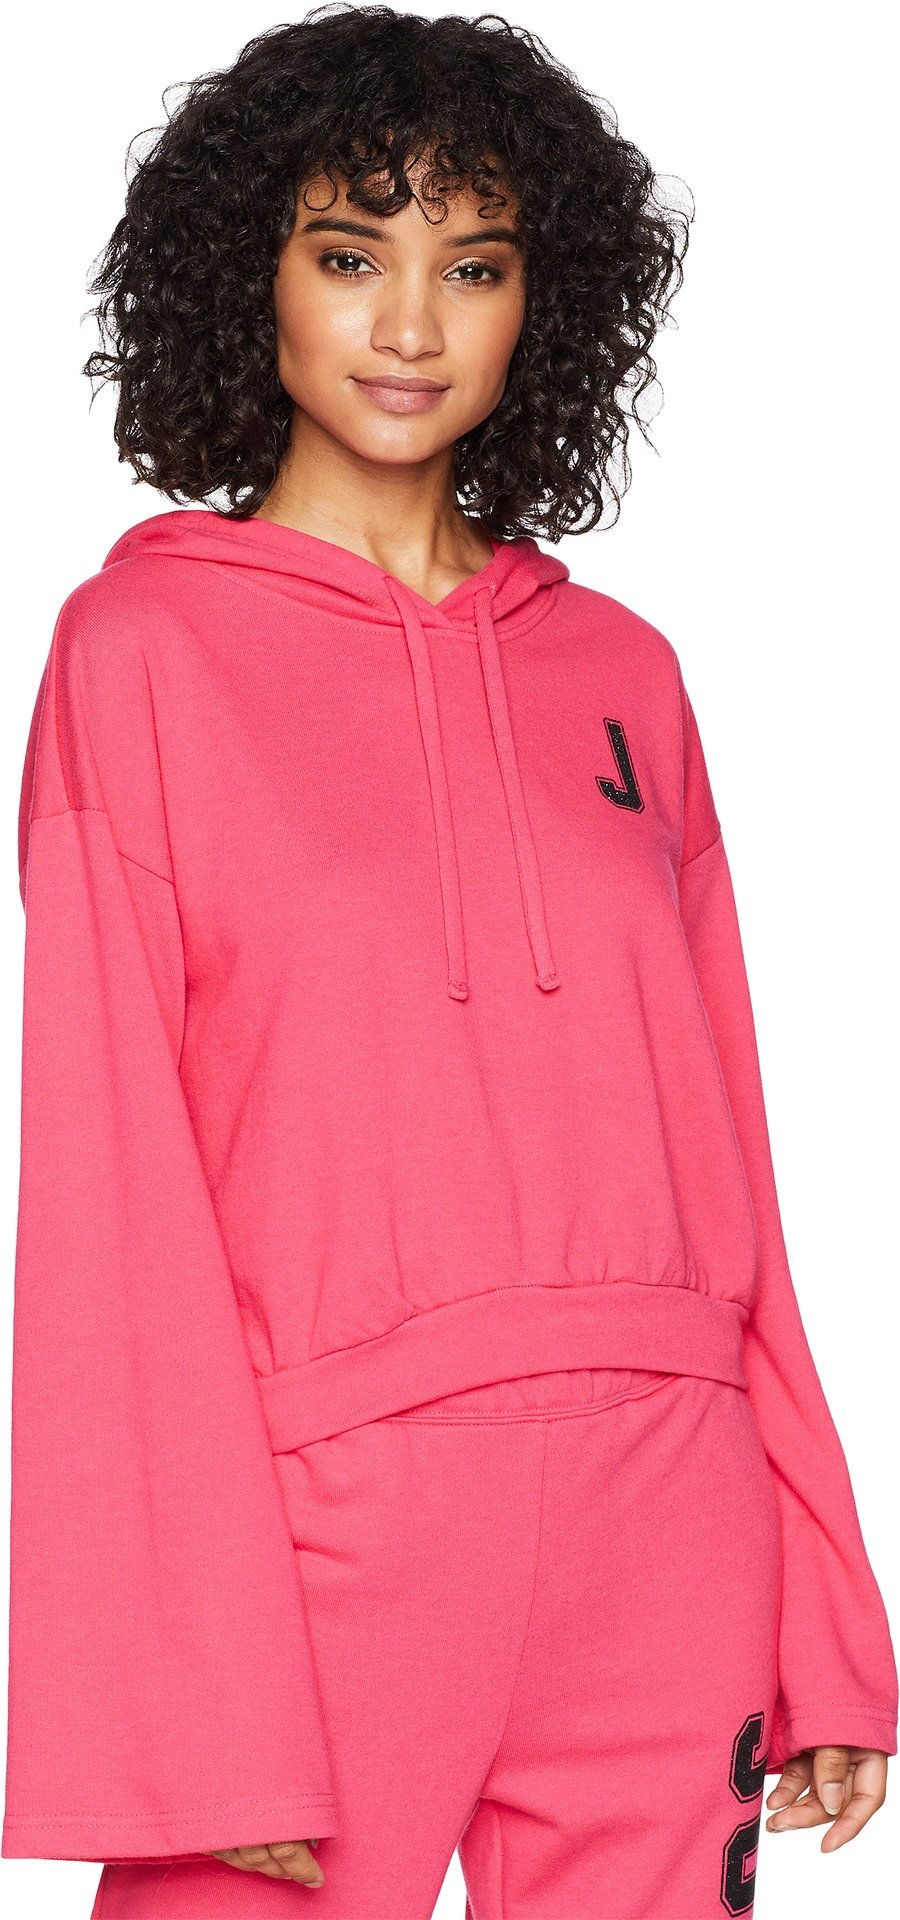 Juicy Couture Women's J Pullover Hoodie Raspberry Sorbet Large